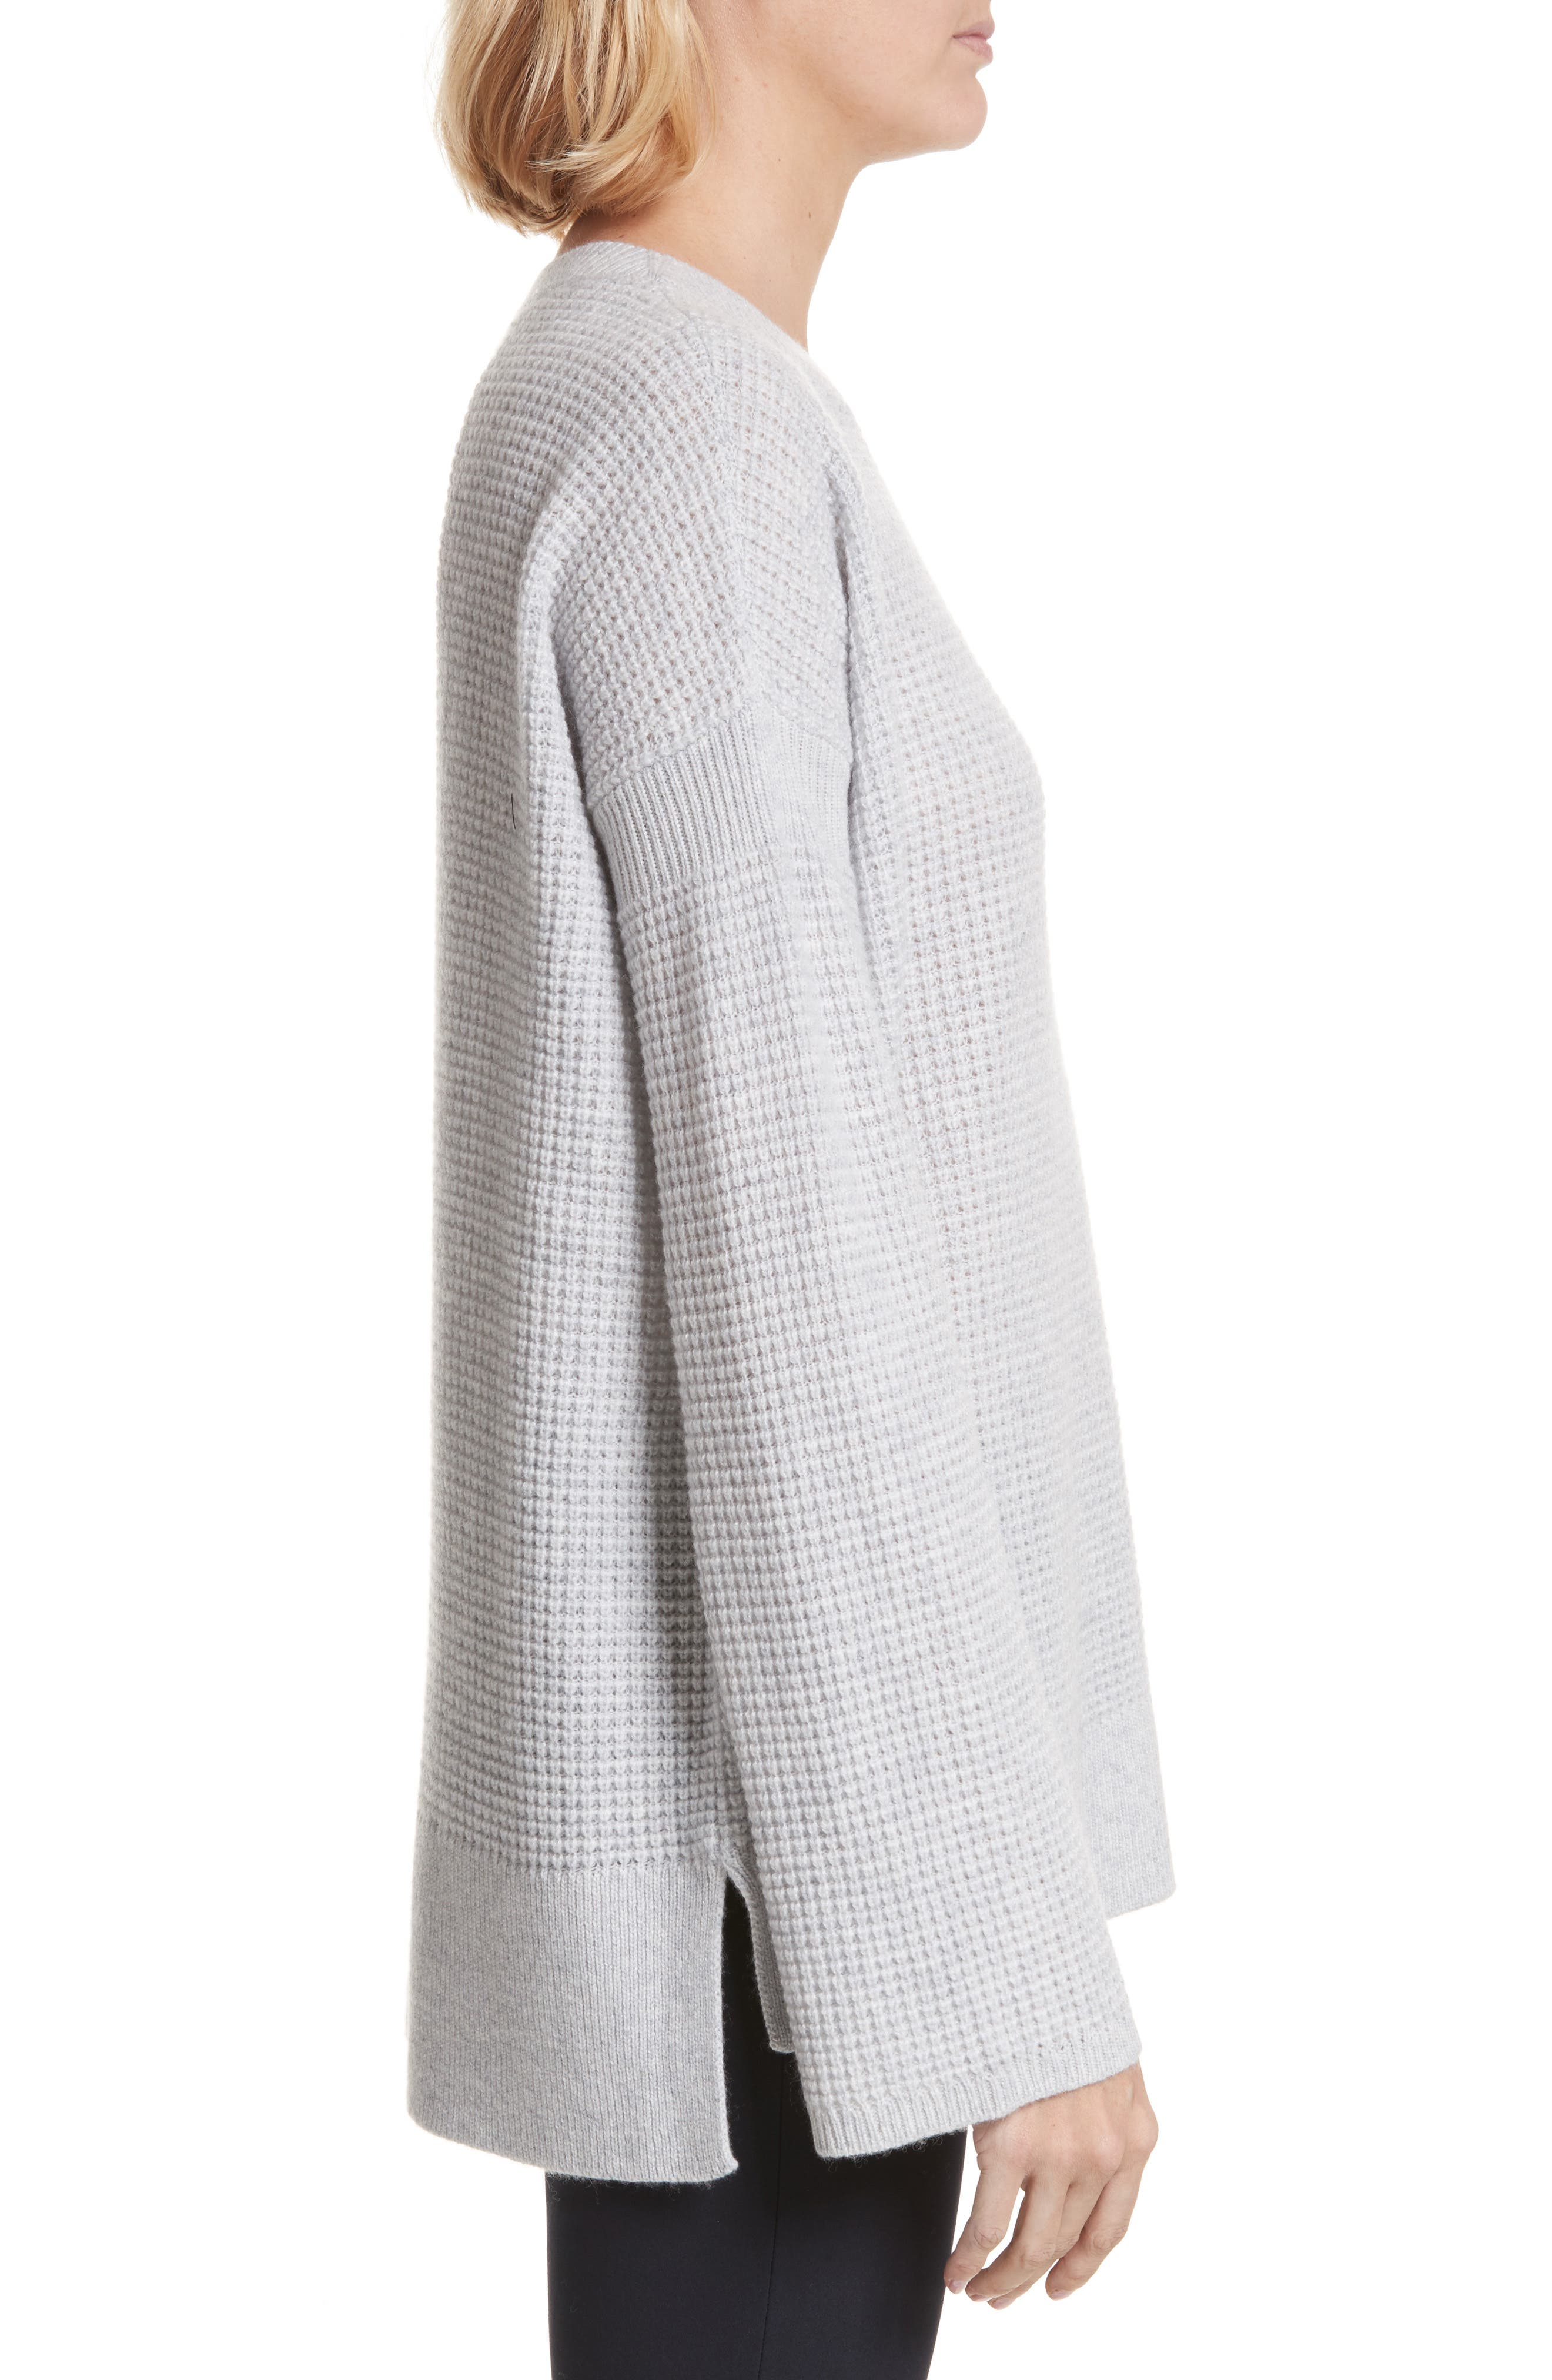 Cinch Sleeve Cashmere Sweater,                             Alternate thumbnail 3, color,                             Whale Grey